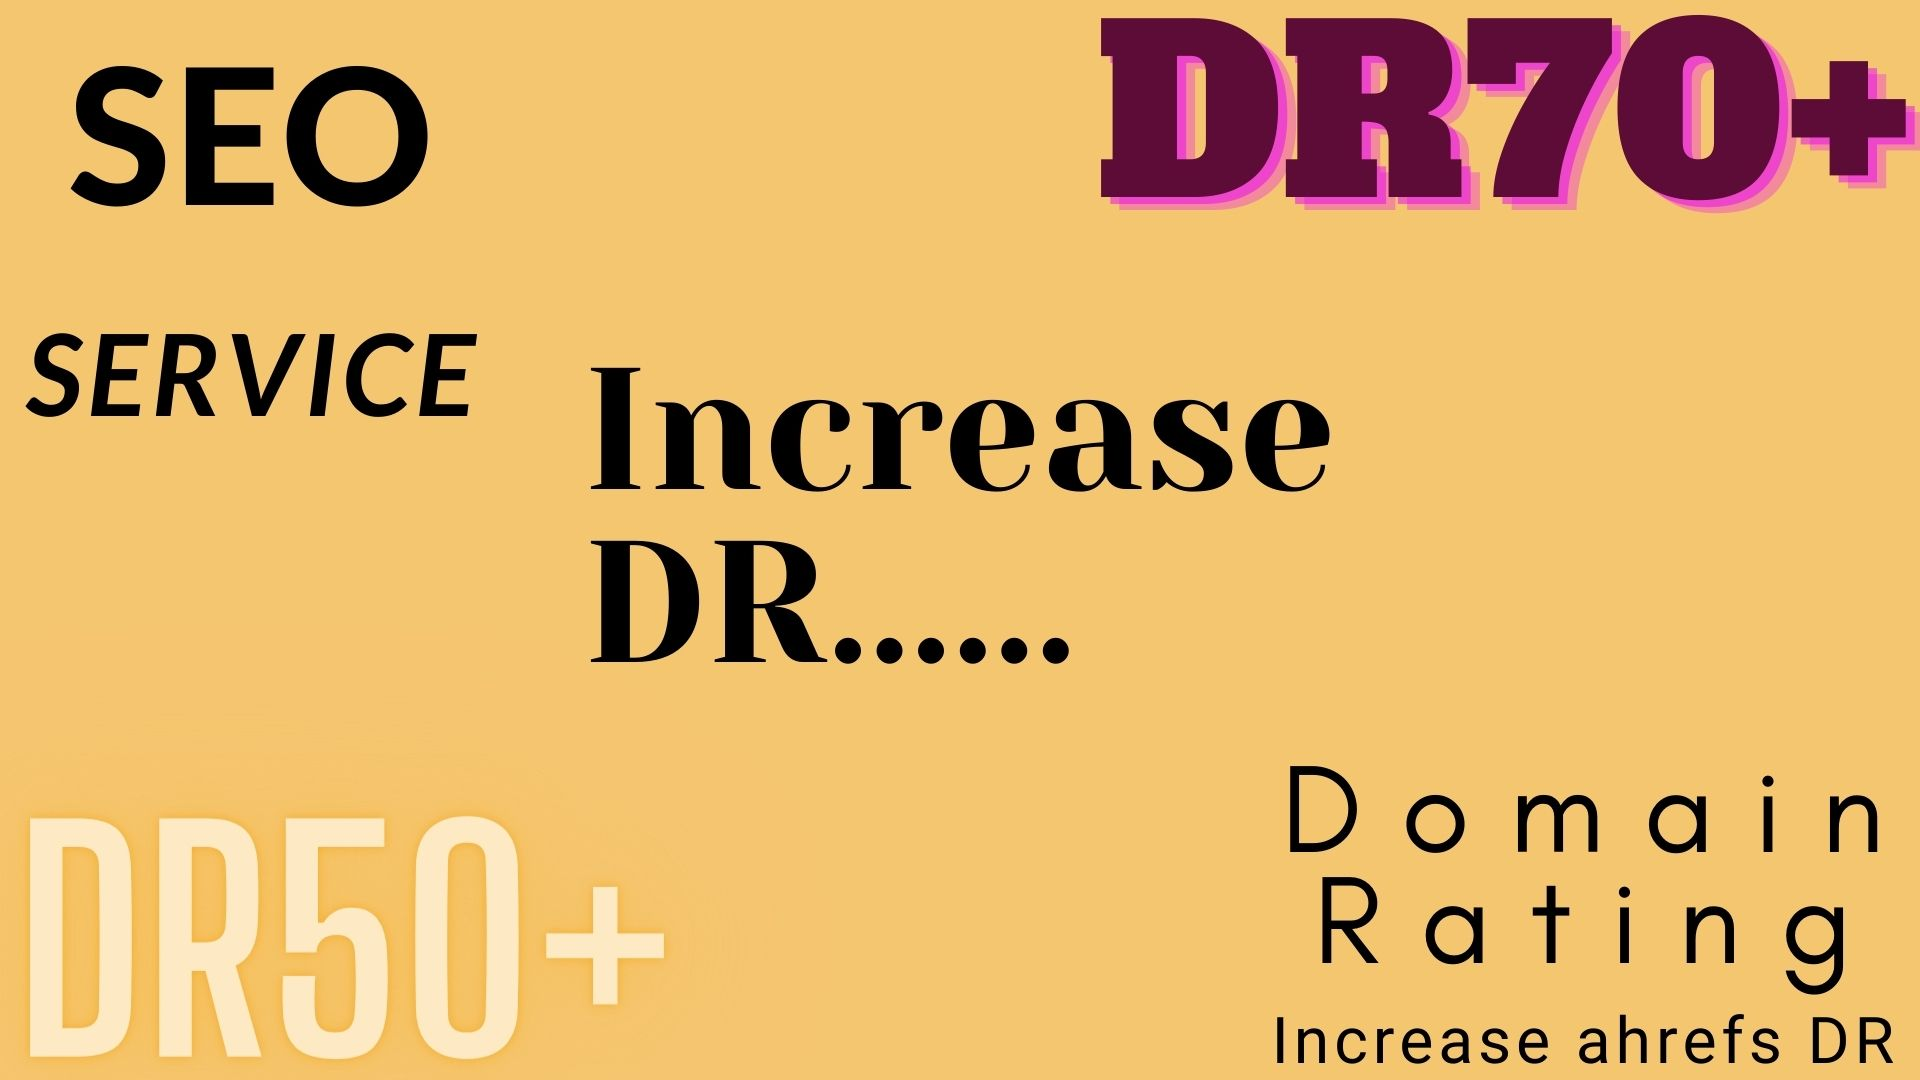 I will increase ahrefs domain rating increase dr in 30 days